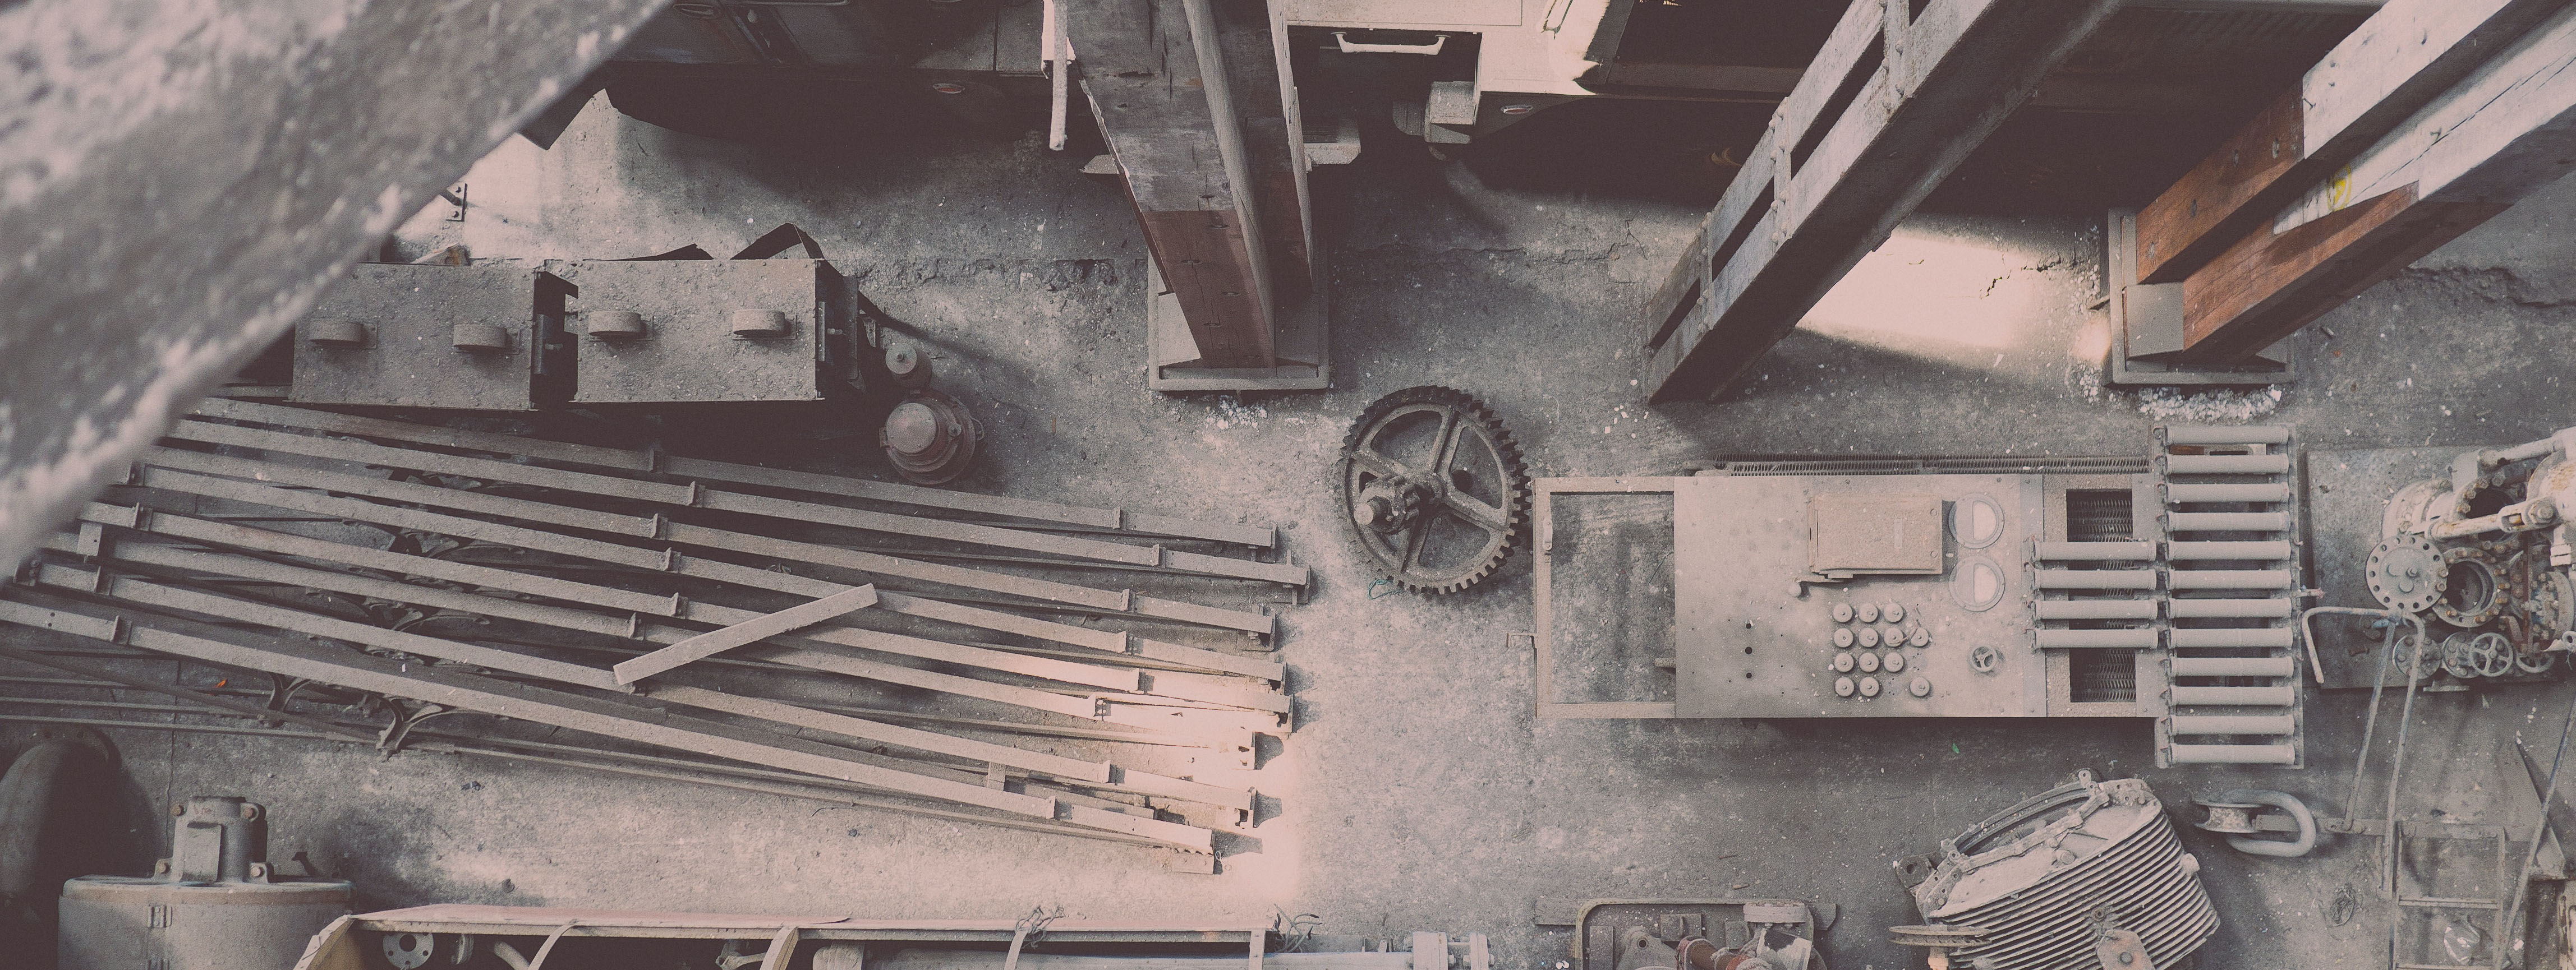 Webinar On Demand: How to Build (or Rebuild) a Marketing Machine from the Ground Up